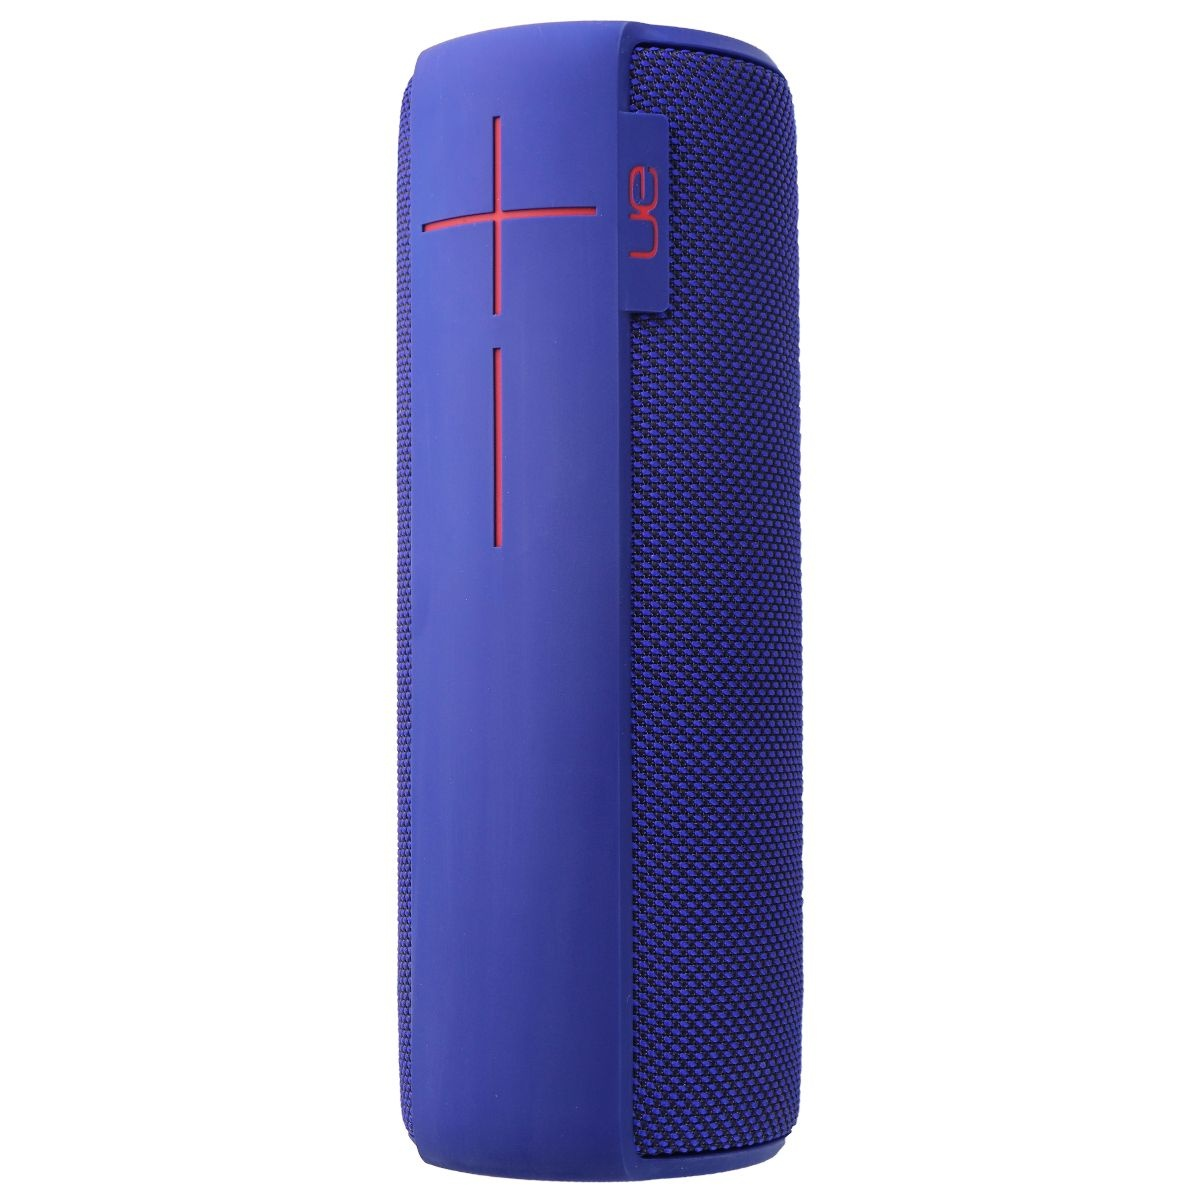 UE MEGABOOM - Portable Waterproof / Shockproof Bluetooth Speaker - Electric Blue